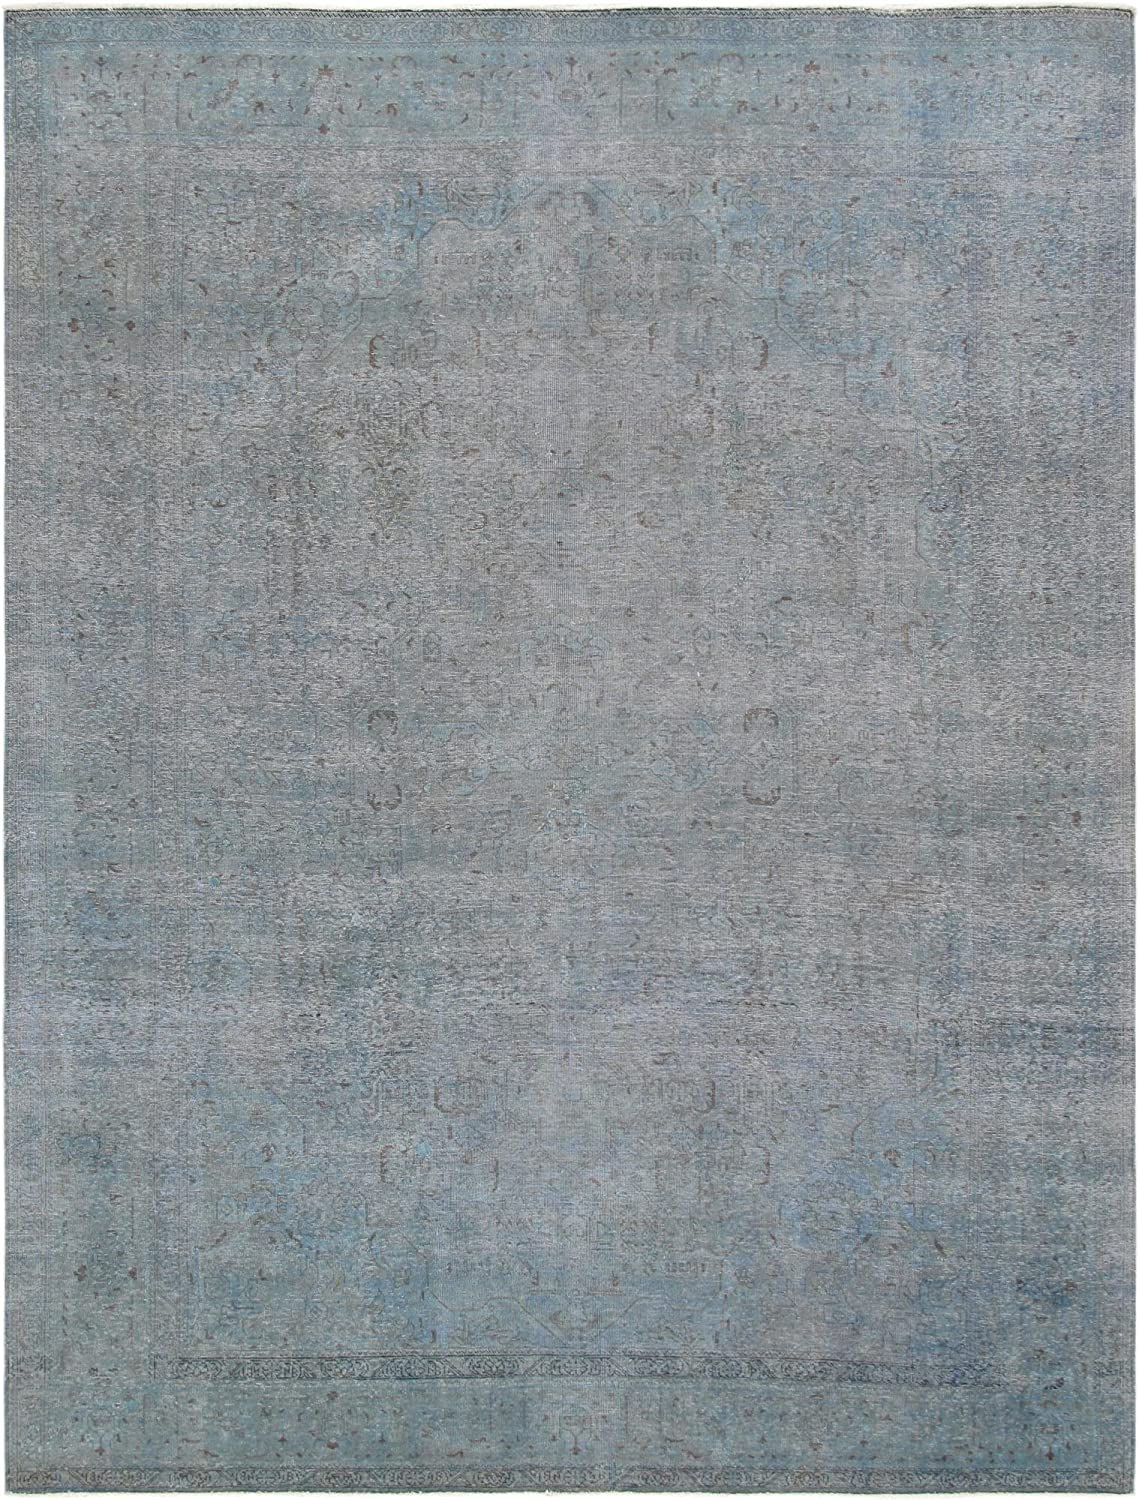 Pasargad Carpets Vintage Overdyes Wool Lamb's Hand-Knotted Max 62% Max 71% OFF OFF Area